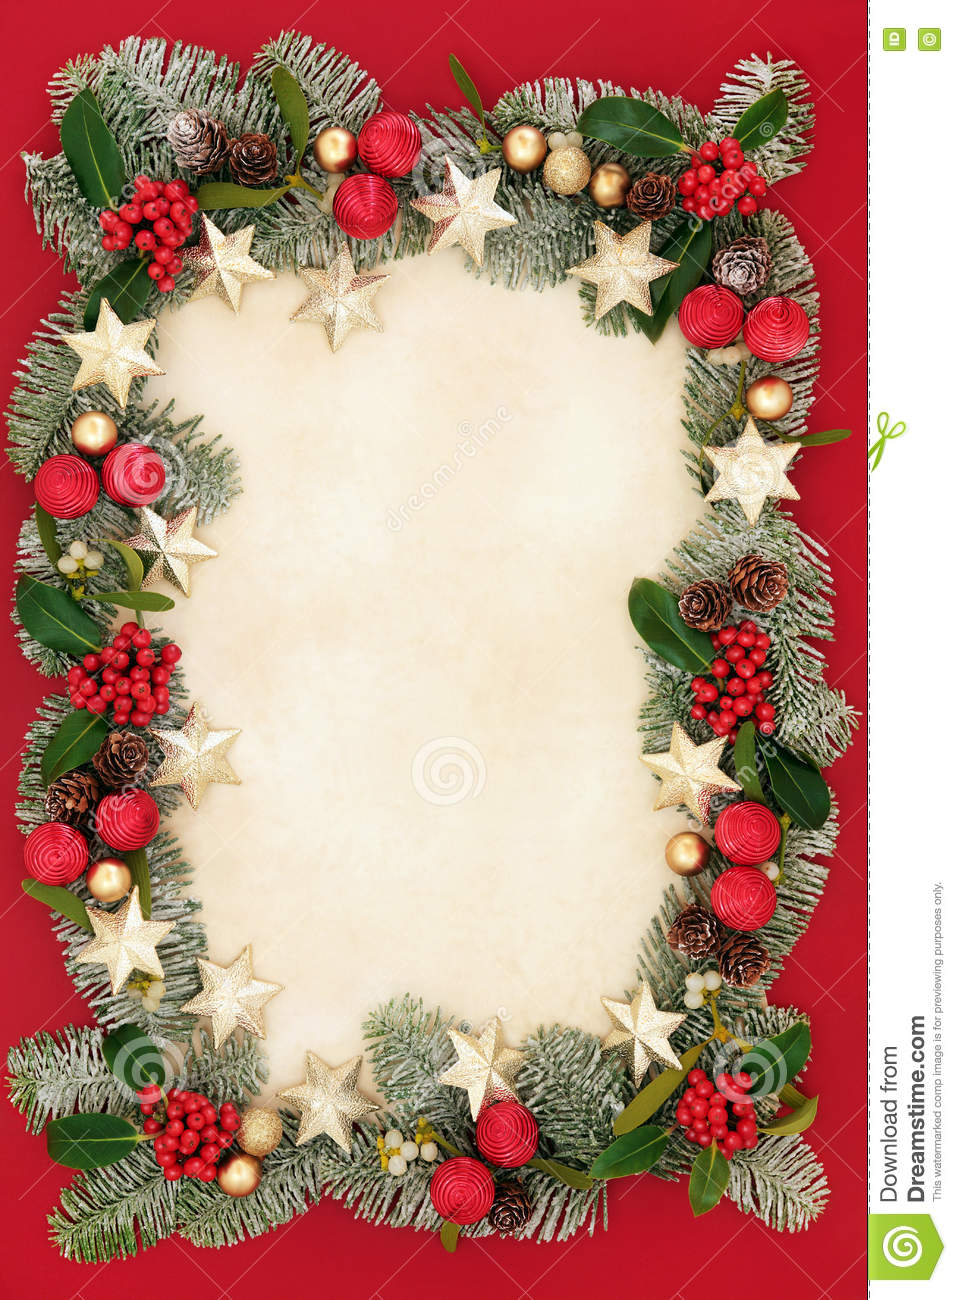 Christmas floral border stock photos freeimages com - Royalty Free Stock Photo Download Christmas Floral Border